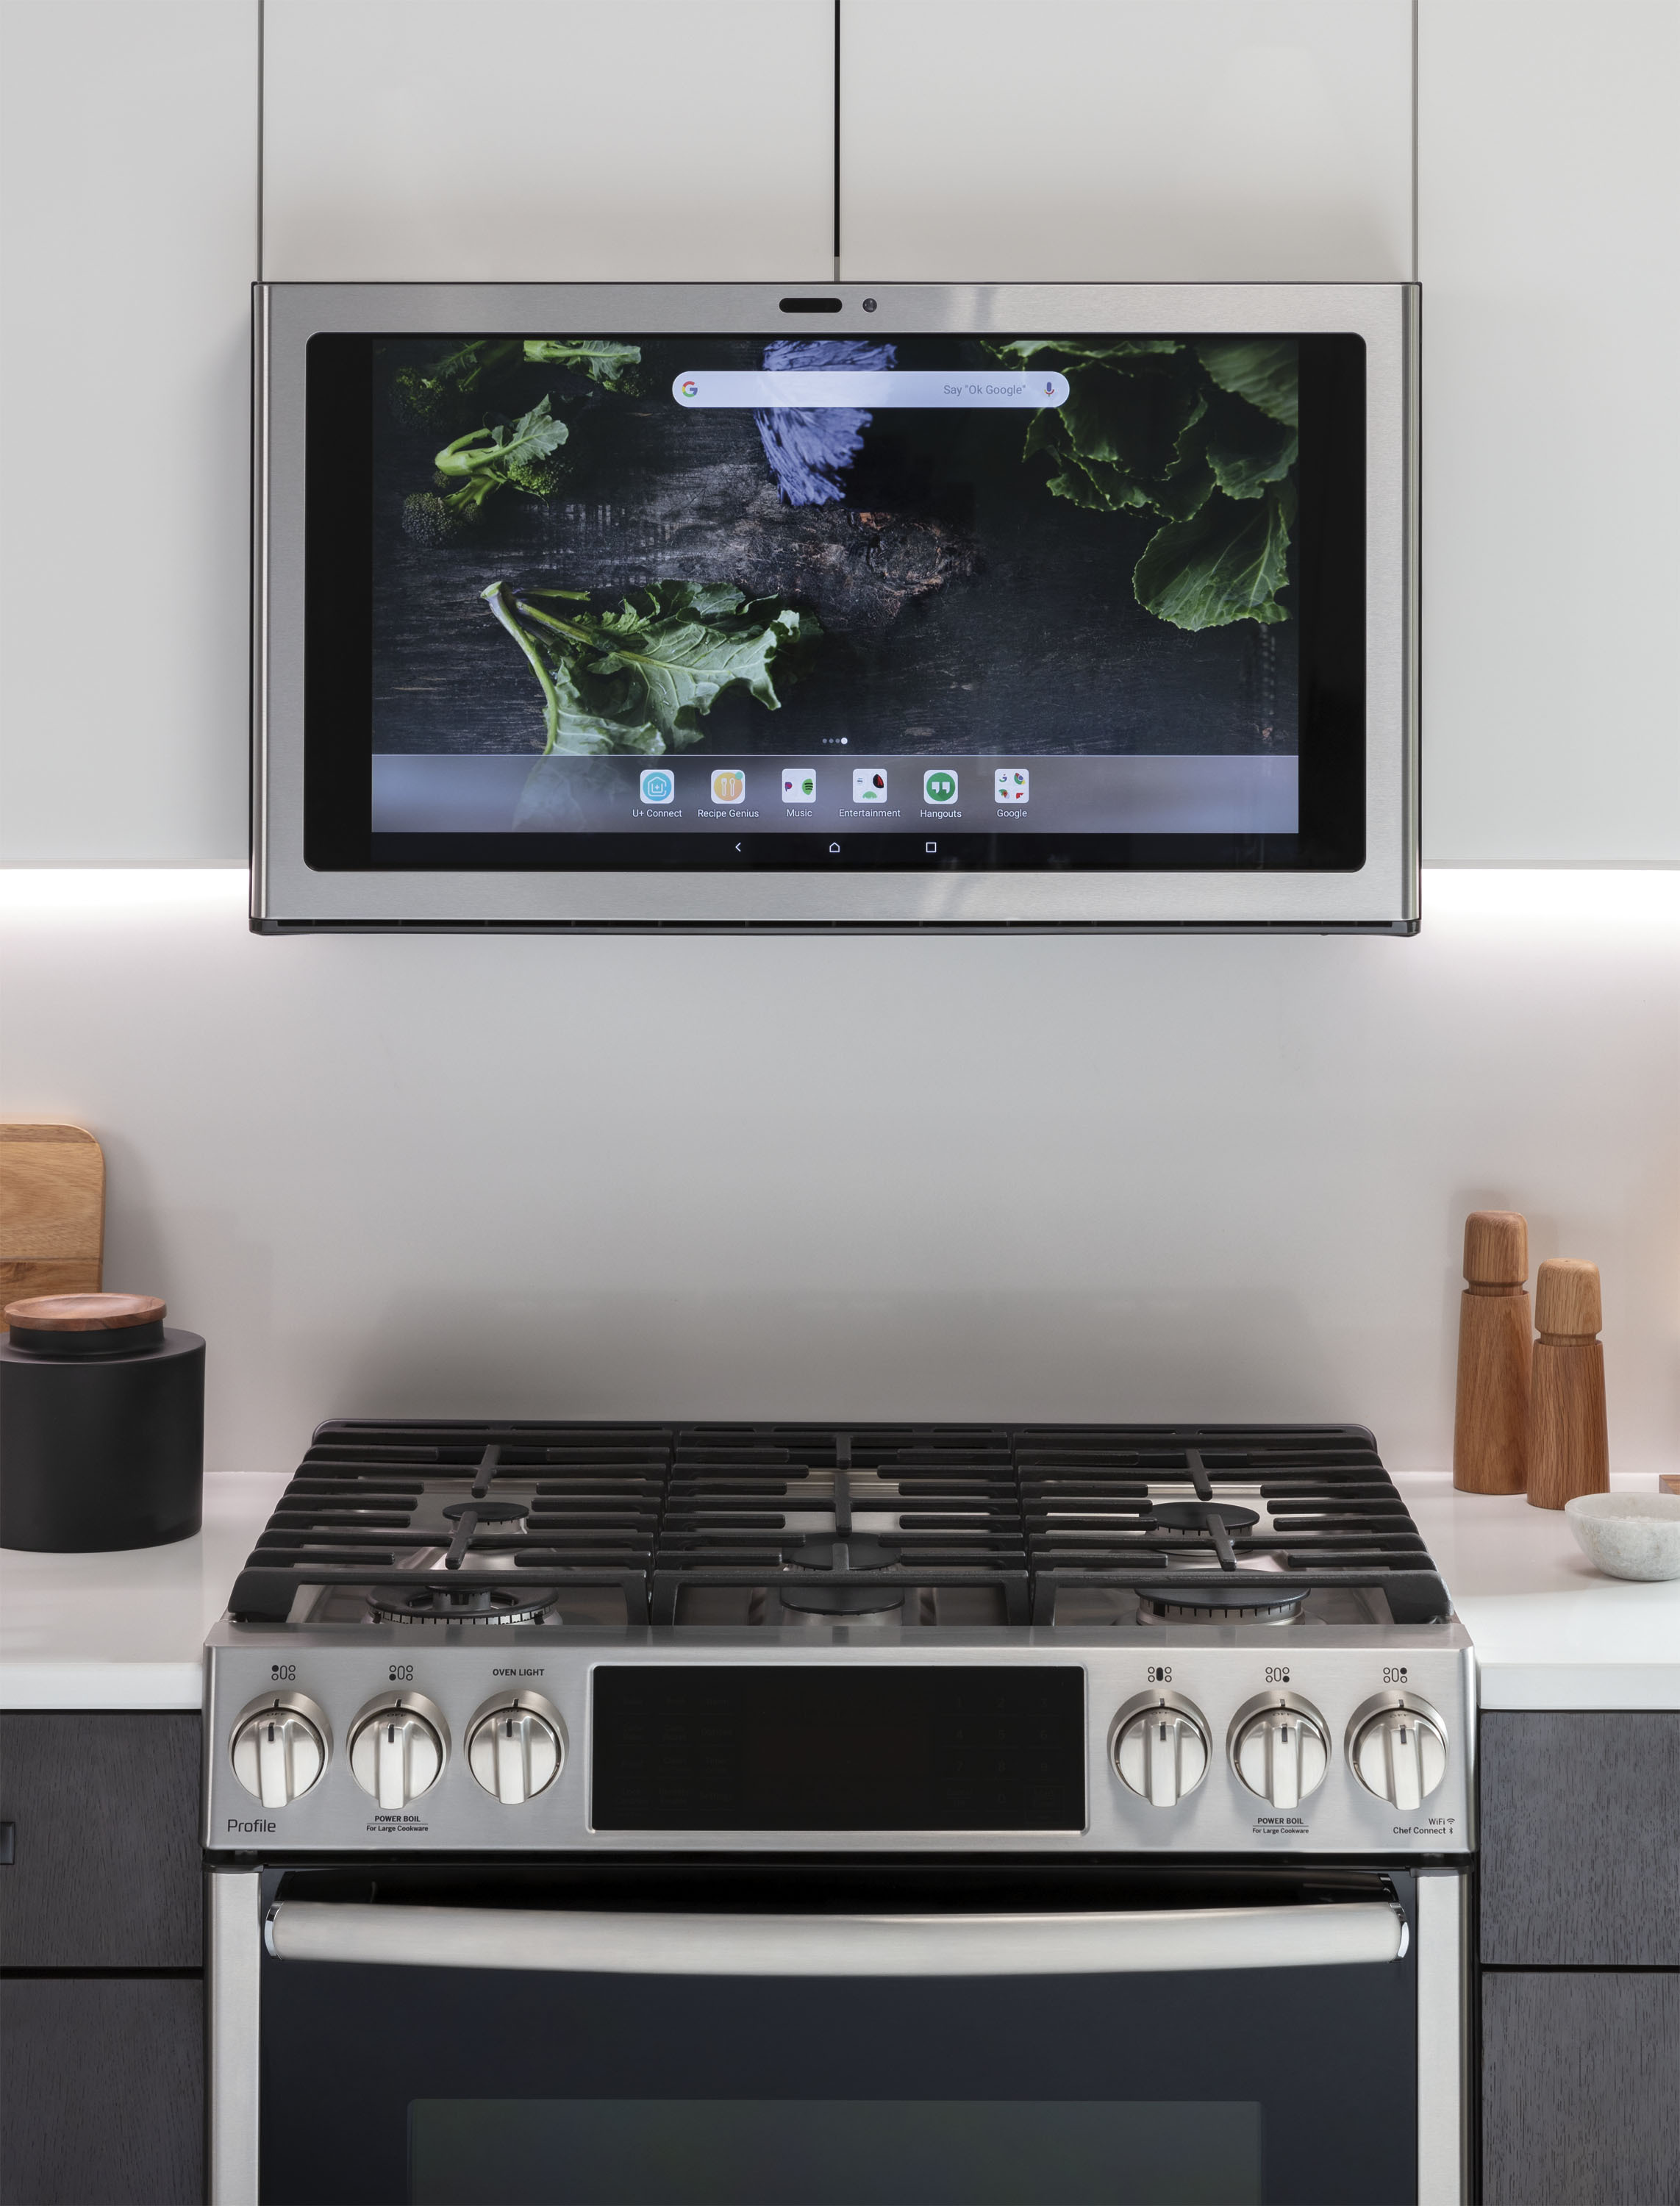 Ge Appliances Reveals The New Heartbeat Of The Connected Home